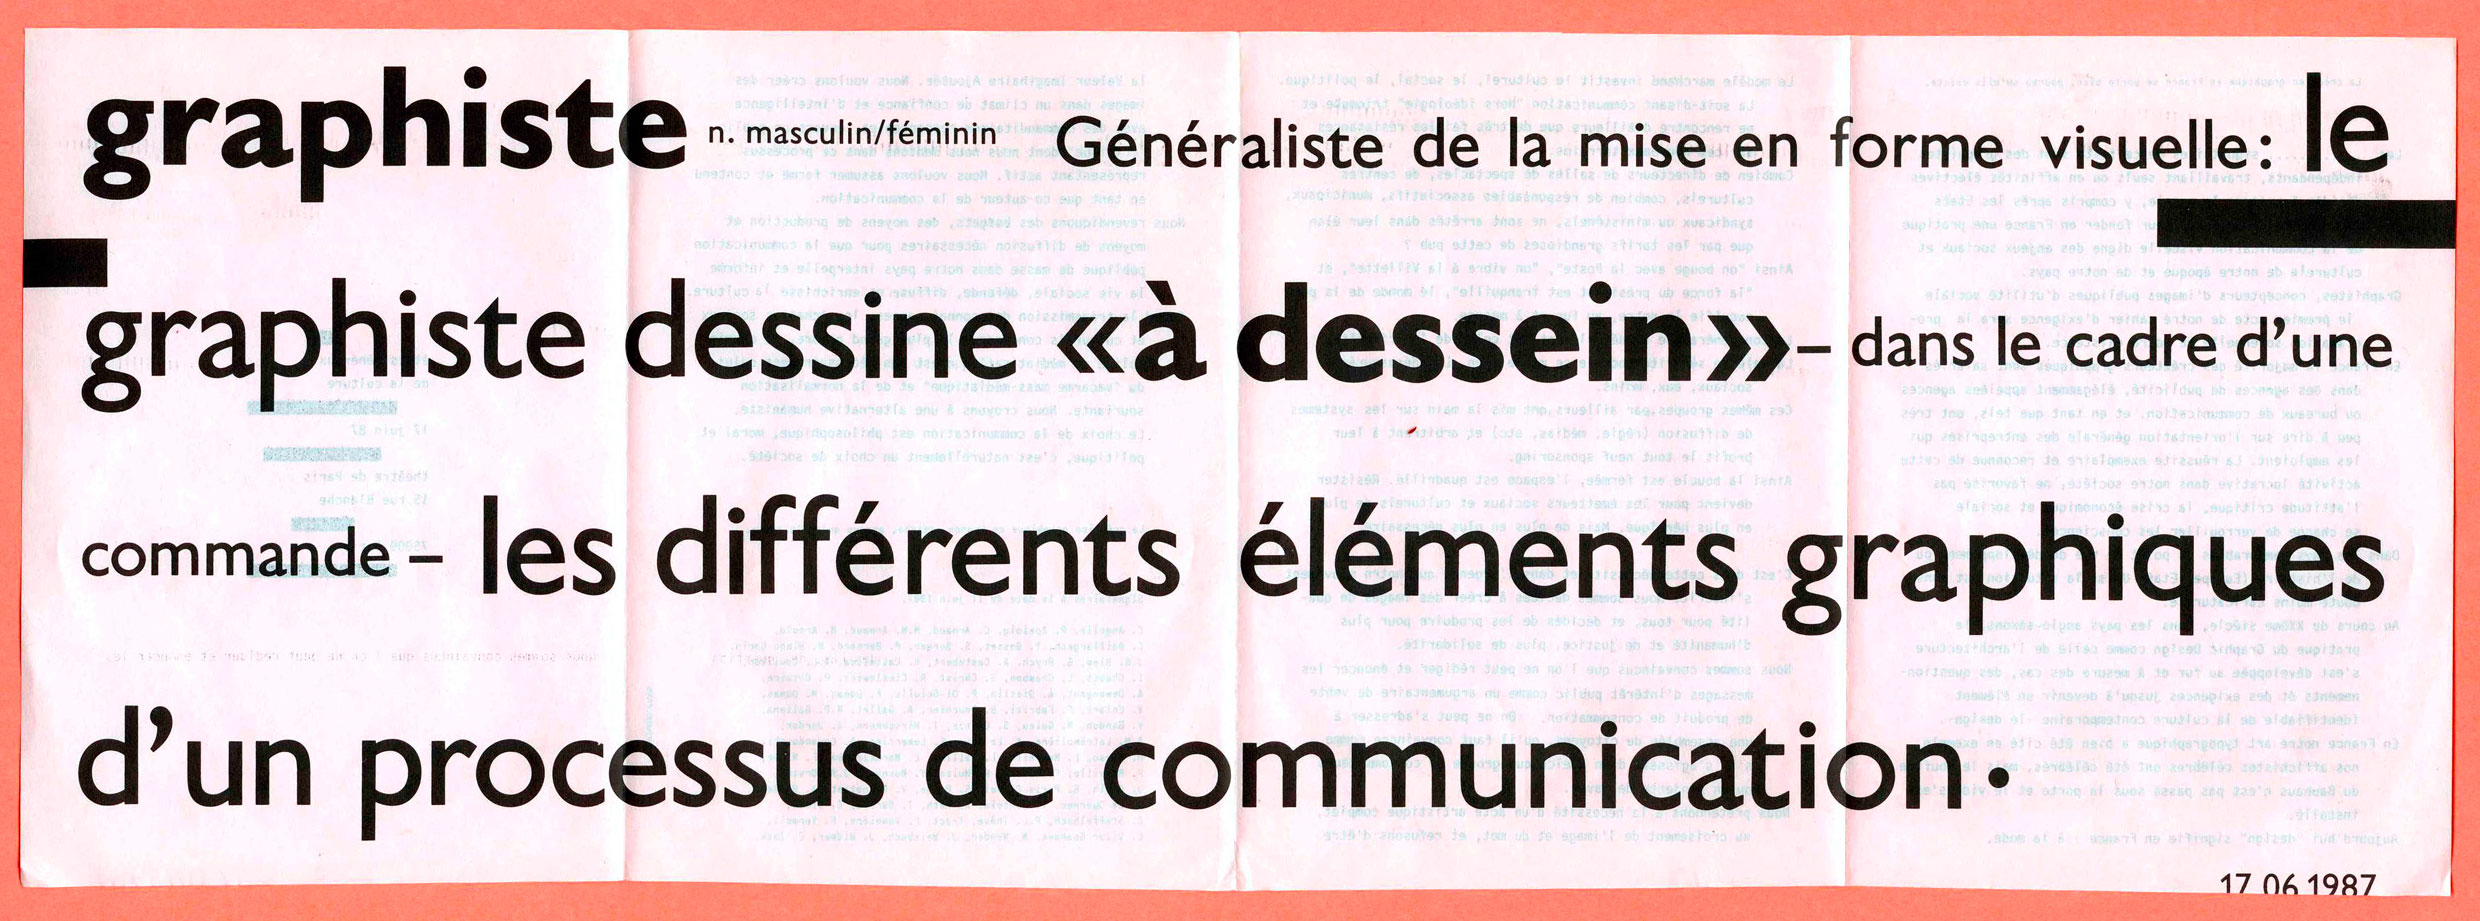 definition-graphiste-etats-generaux-de-la-culture-en-1987-02